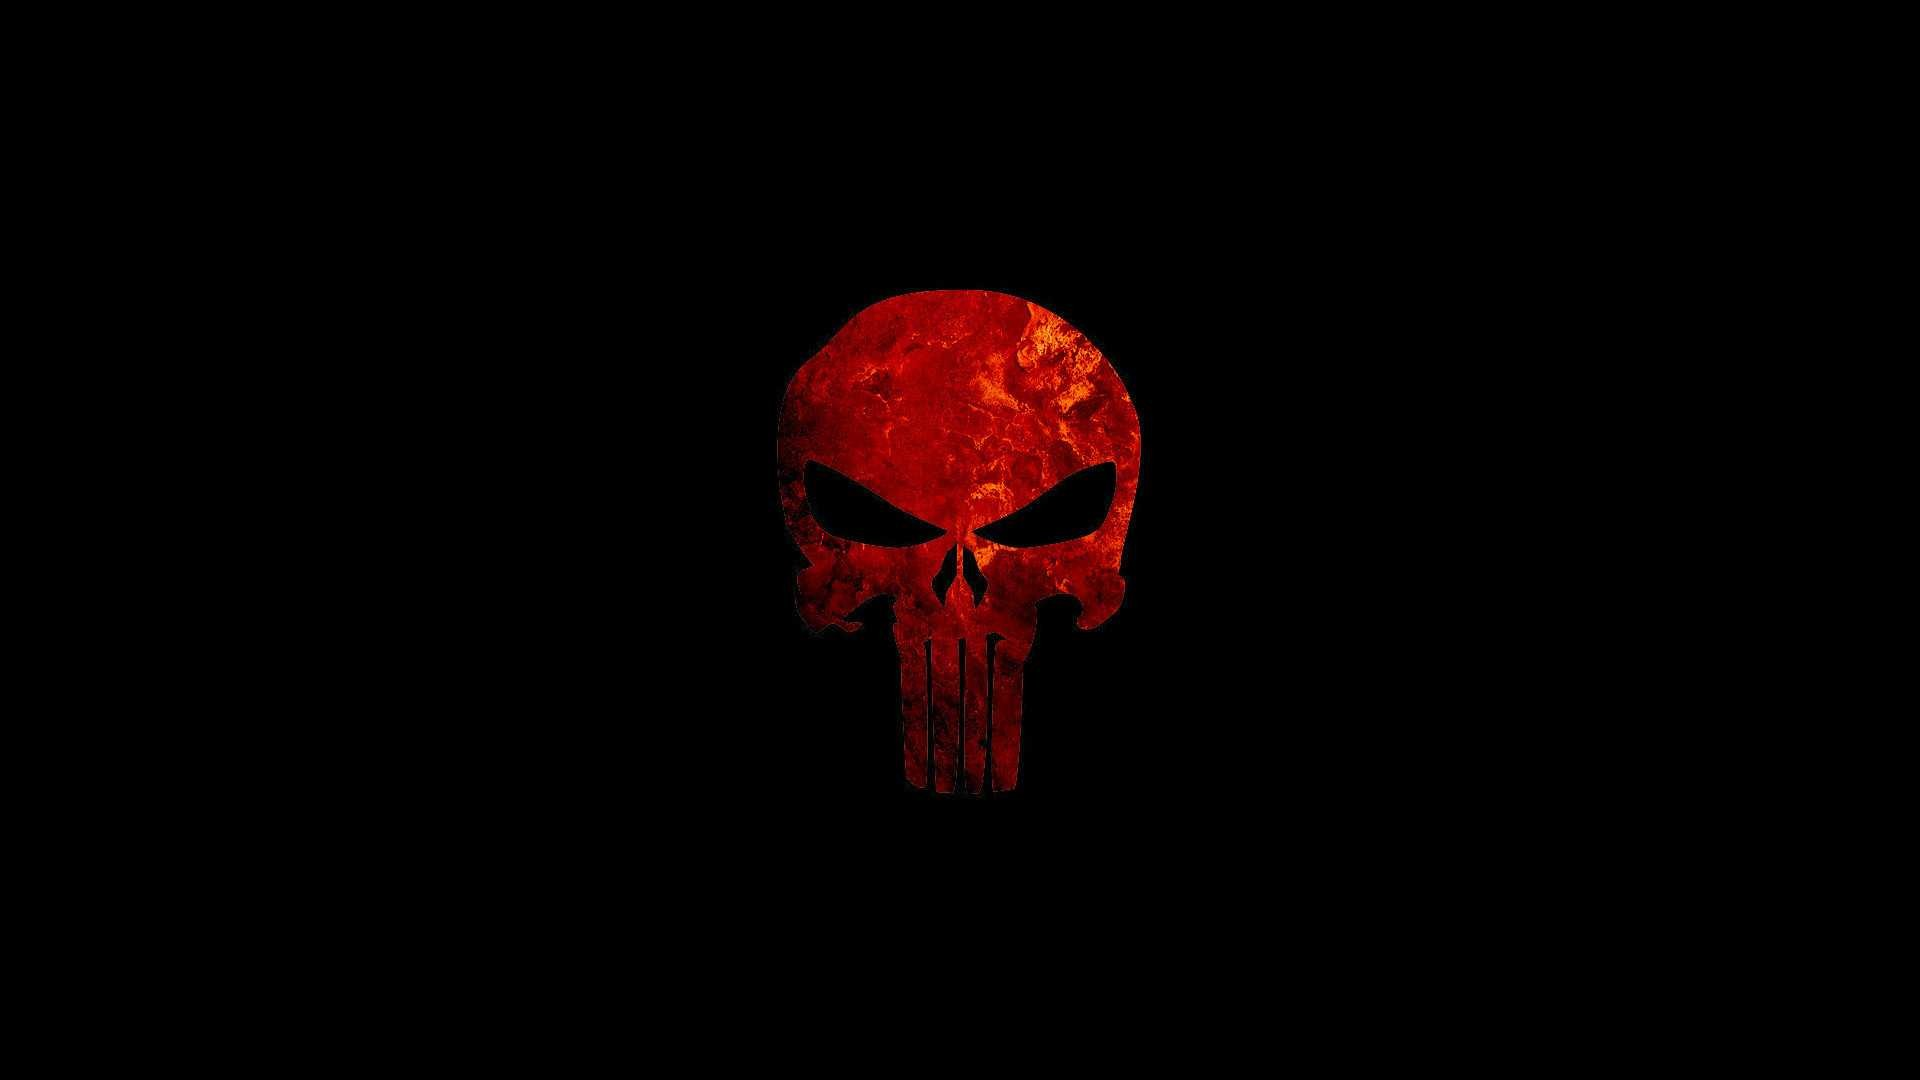 Res: 1920x1080, Punisher Skull Wallpaper High Resolution 4k Desktop The Of Androids